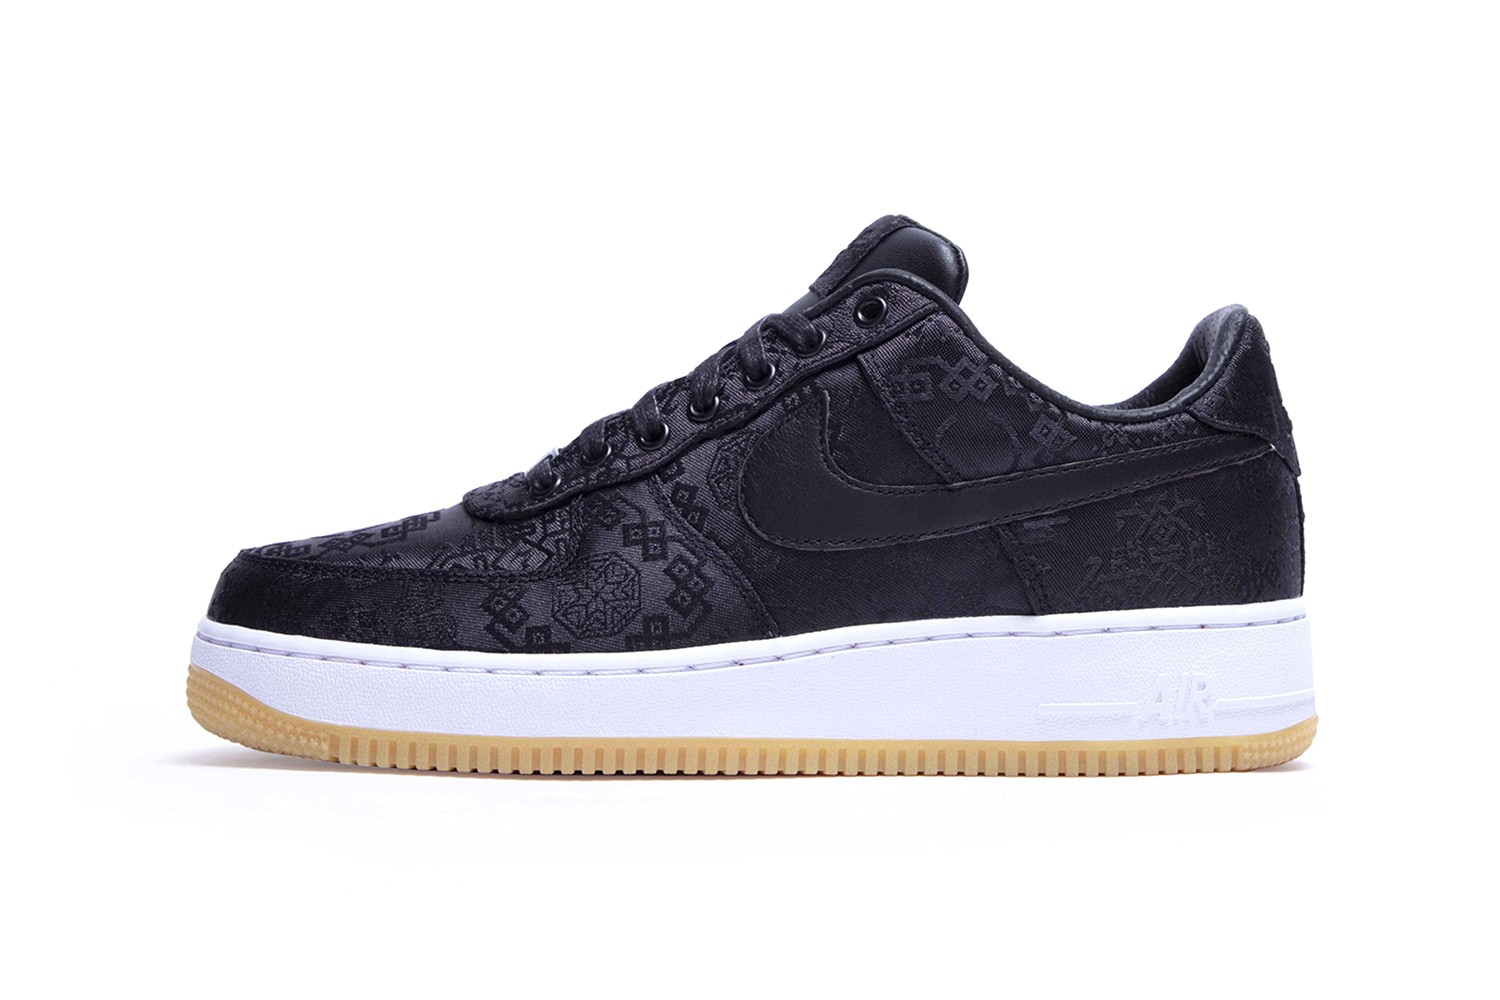 fragment design CLOT Nike Air Force 1 Black Silk Official Look black red release info date Shibuya Parco POP by Jun Buy